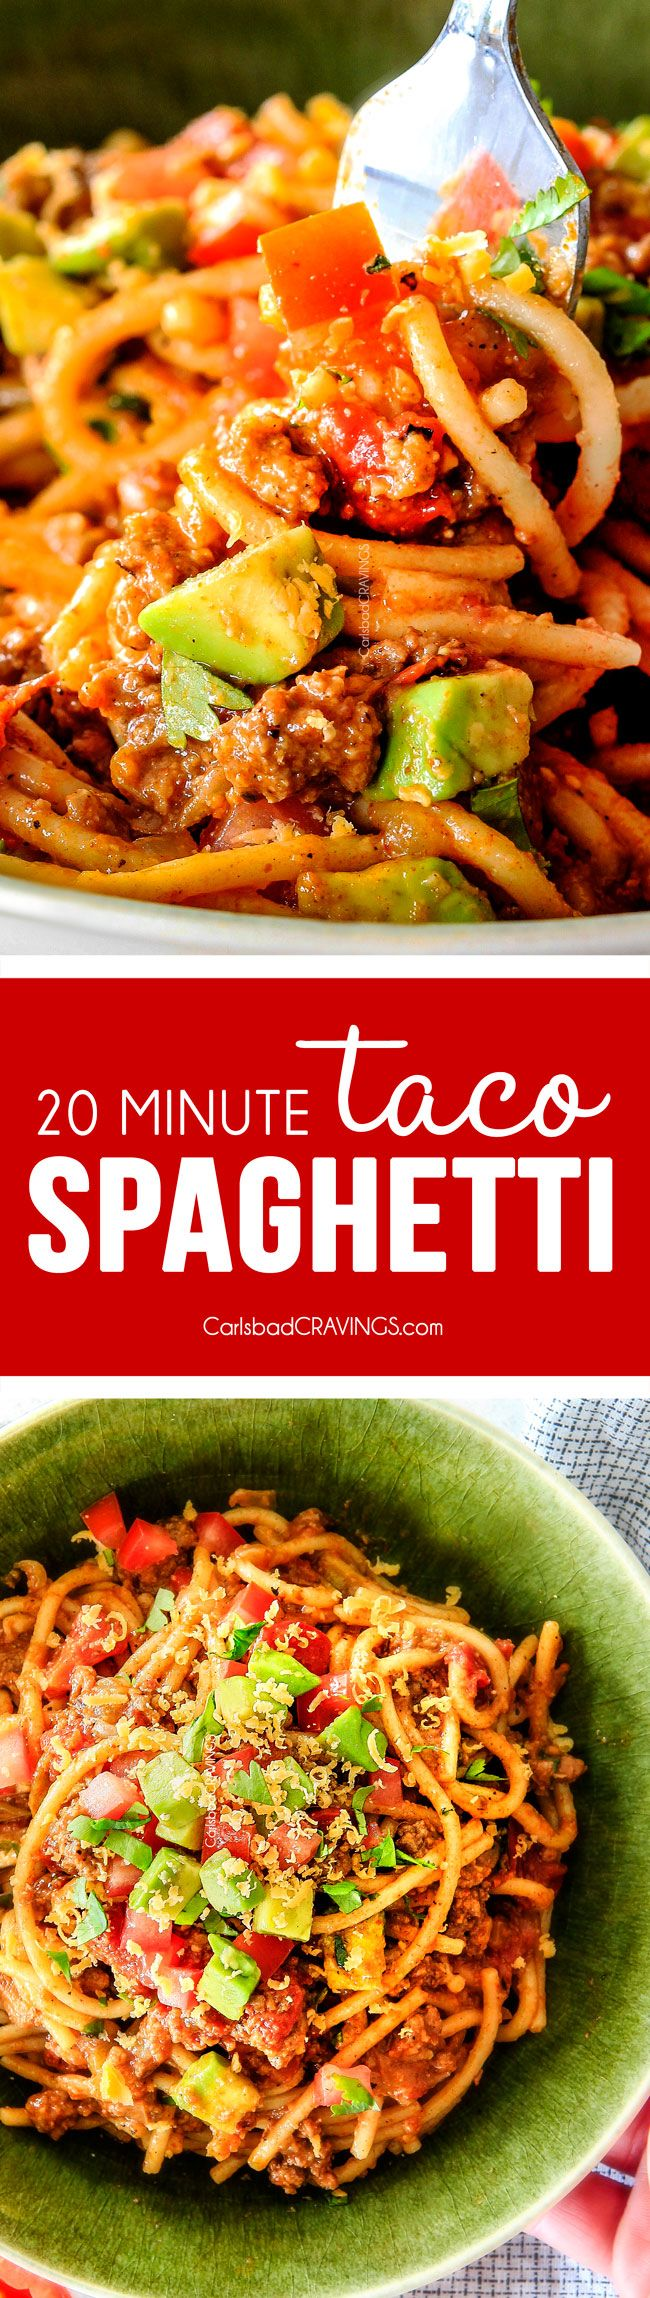 20 Minute Taco Spaghetti is all you favorite taco flavors in hearty, comforting spaghetti form! Simple prep, minimal cleanup, tons of flavor!  Your family will LOVE this!!! via @carlsbadcraving